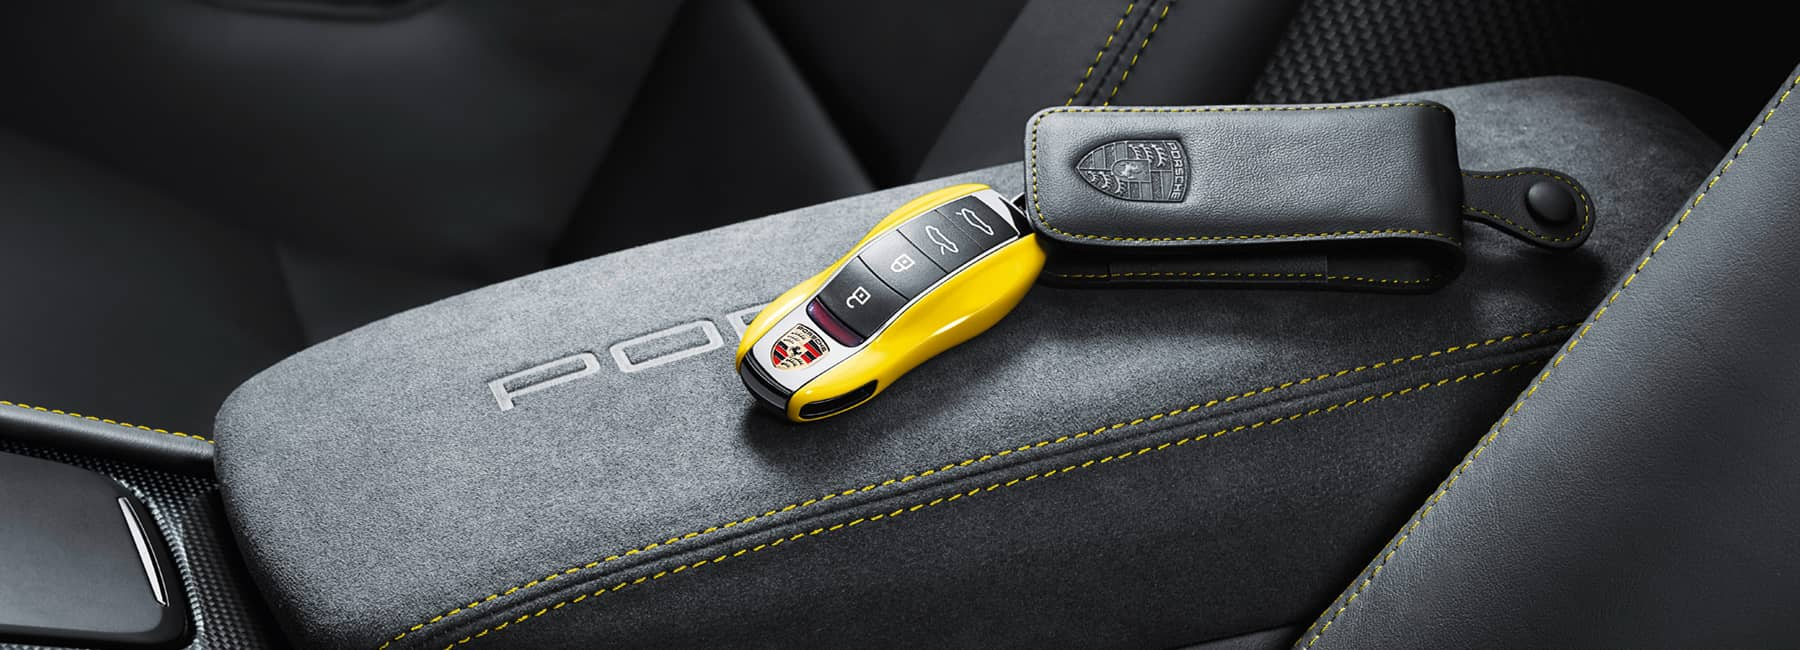 A yellow Porsche key fob resting on the center arm rest inside a vehicle.